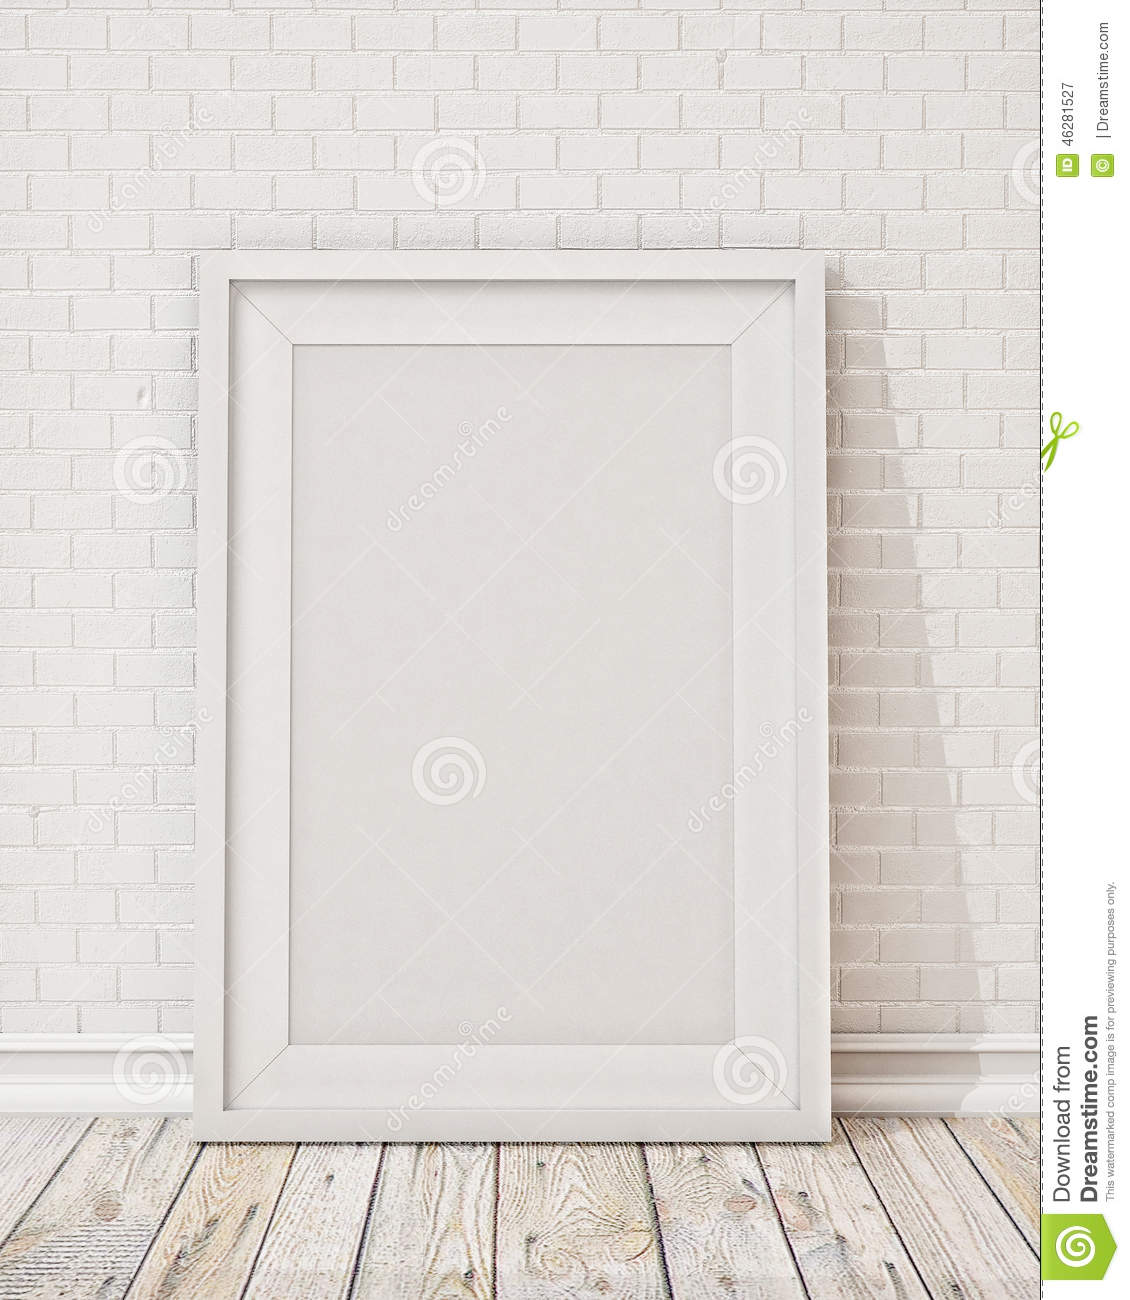 Blank White Picture Frame On The Wall And The Floor Stock